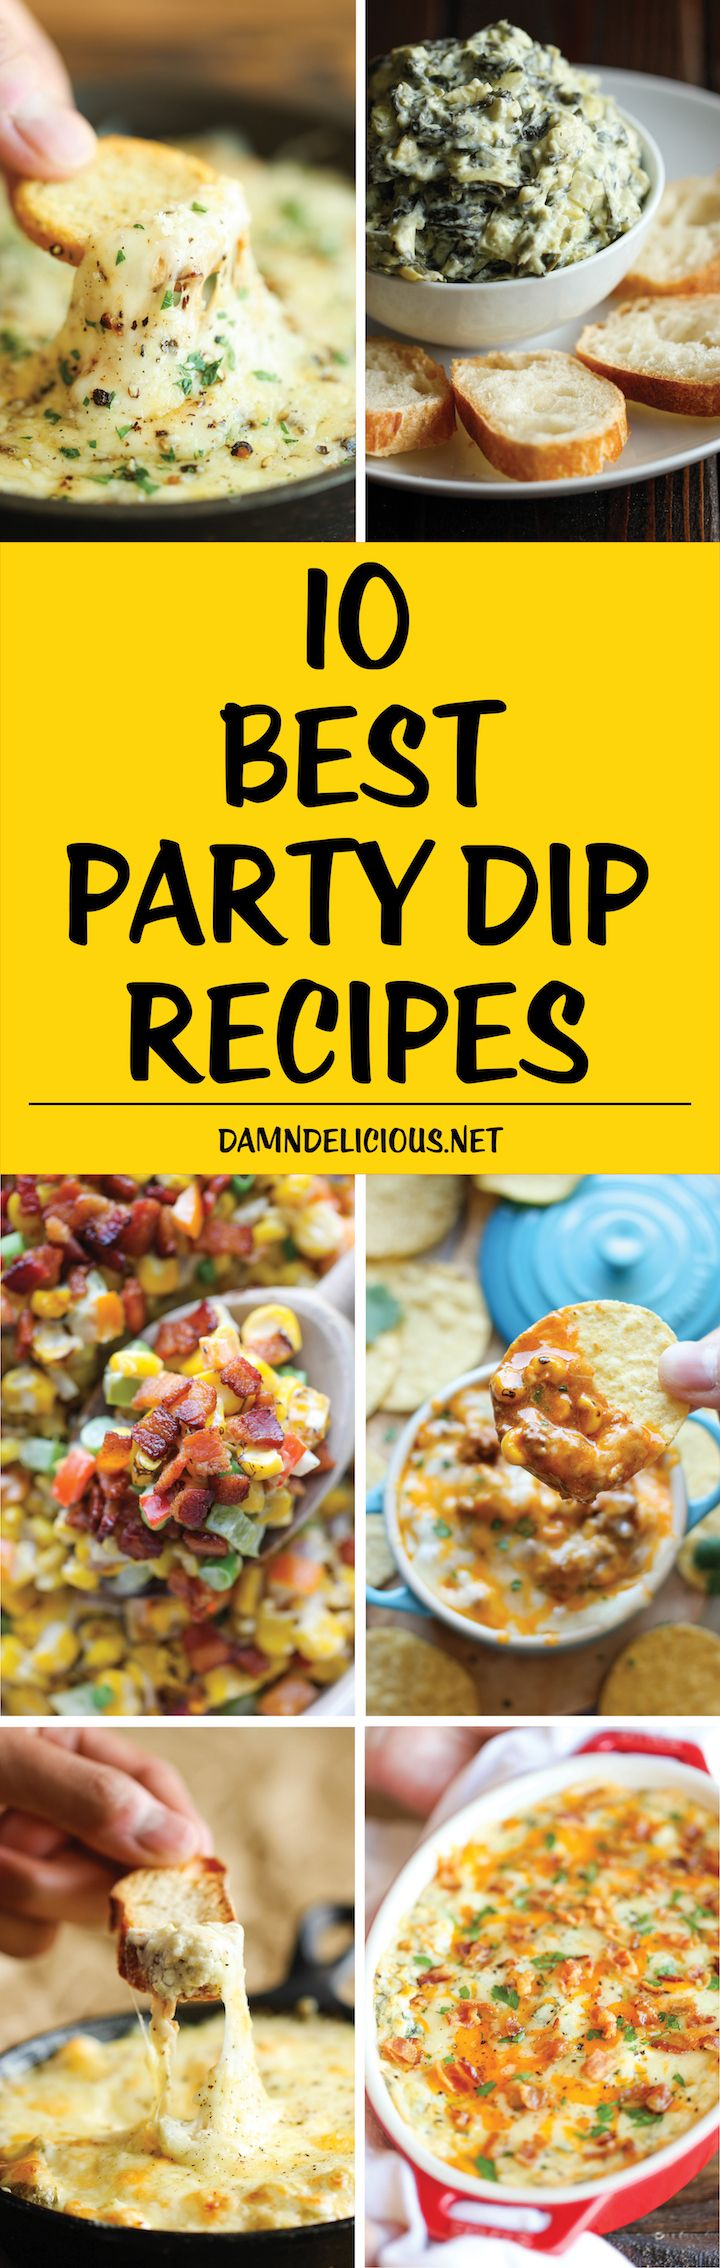 10 Best Party Dip Recipes FoodBlogs.com